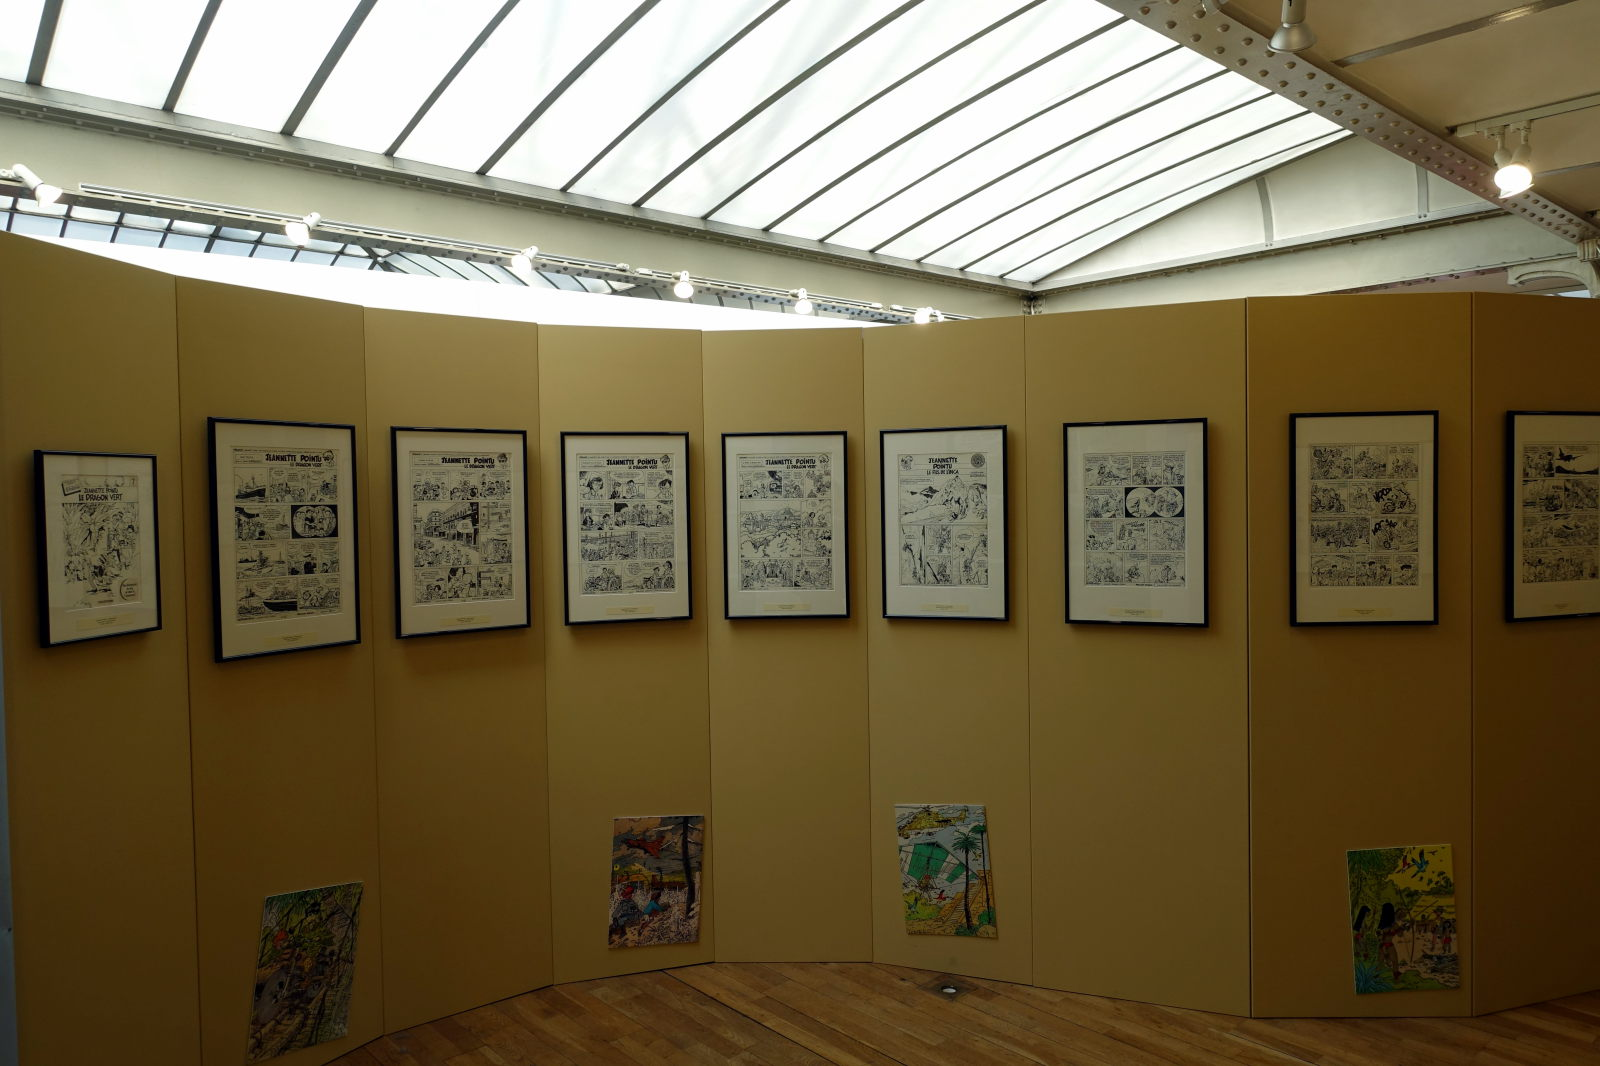 Part of the exhibition devoted to Marc Wasterlain.